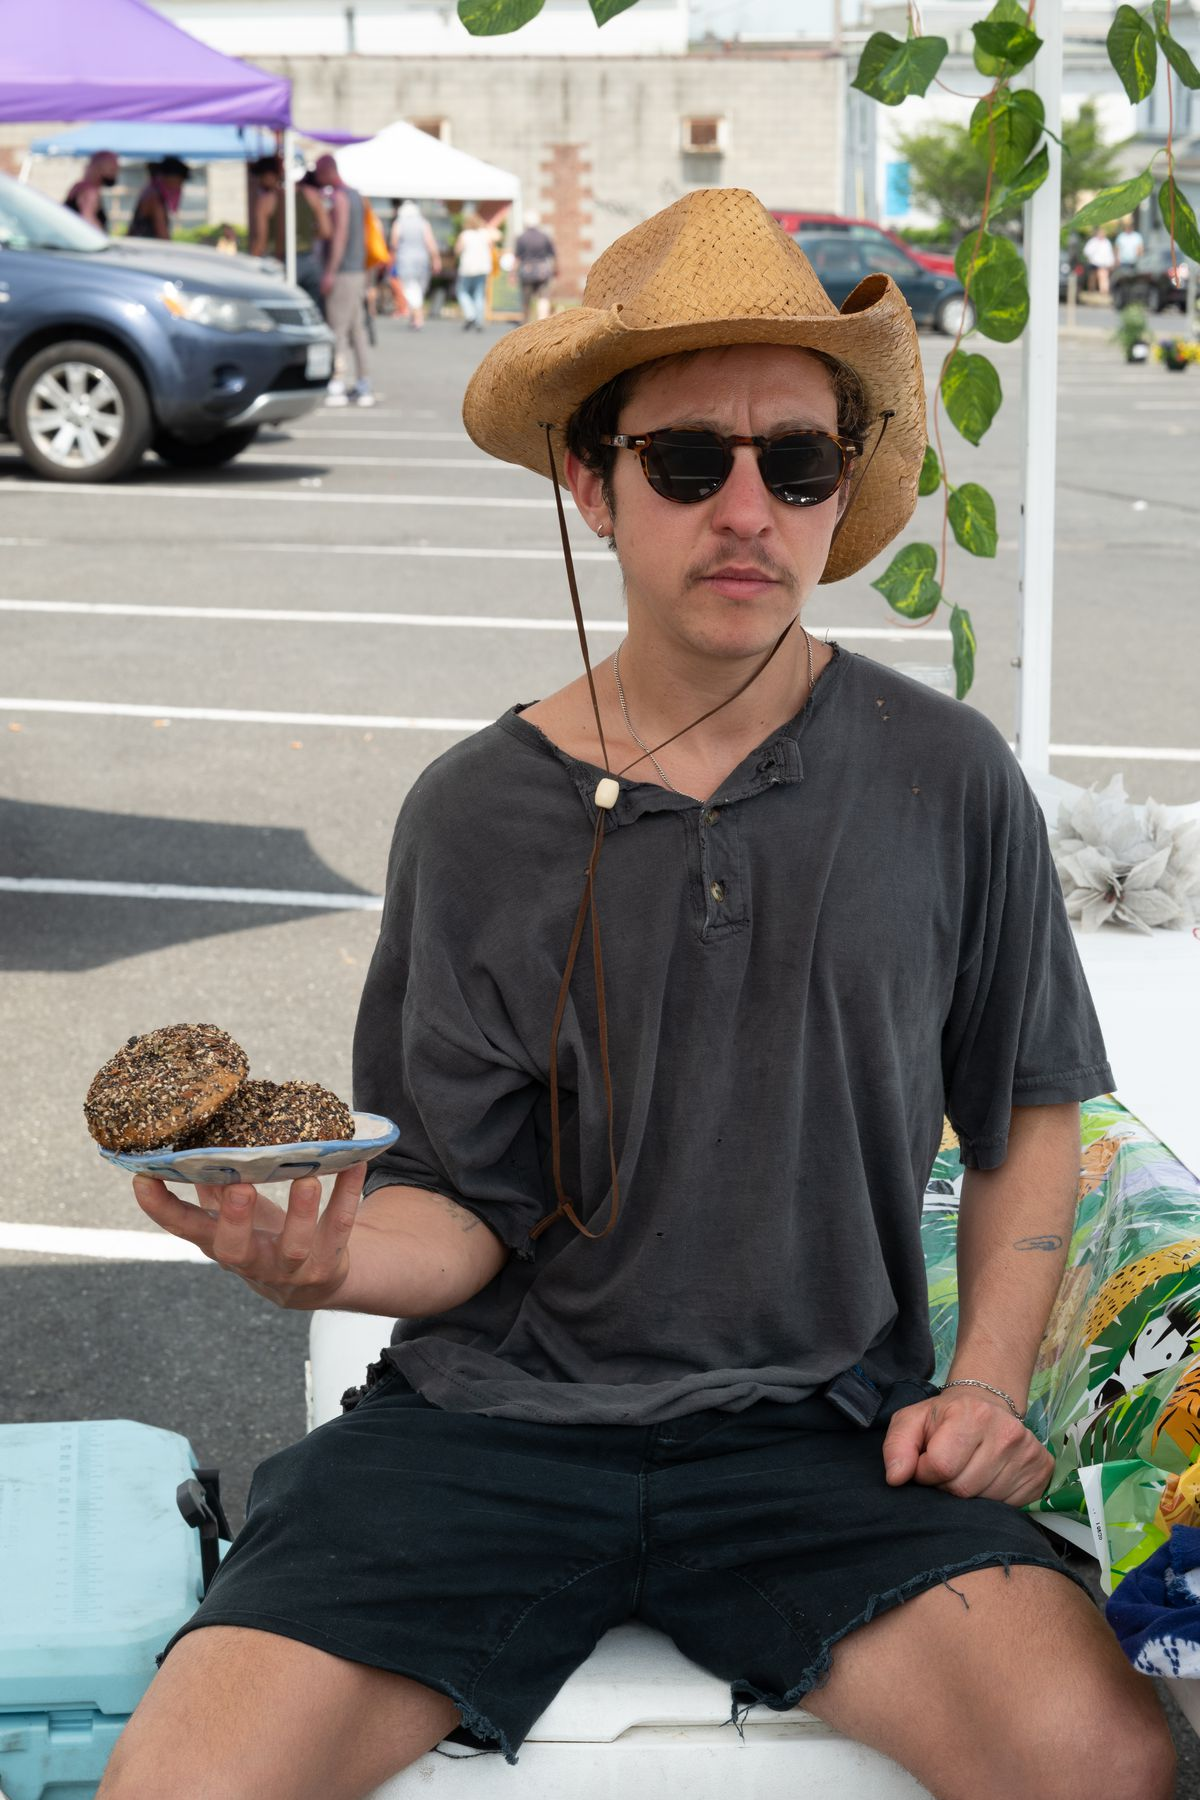 Tray Tepper sits on a cooler, holding a plate of homemade bagels.